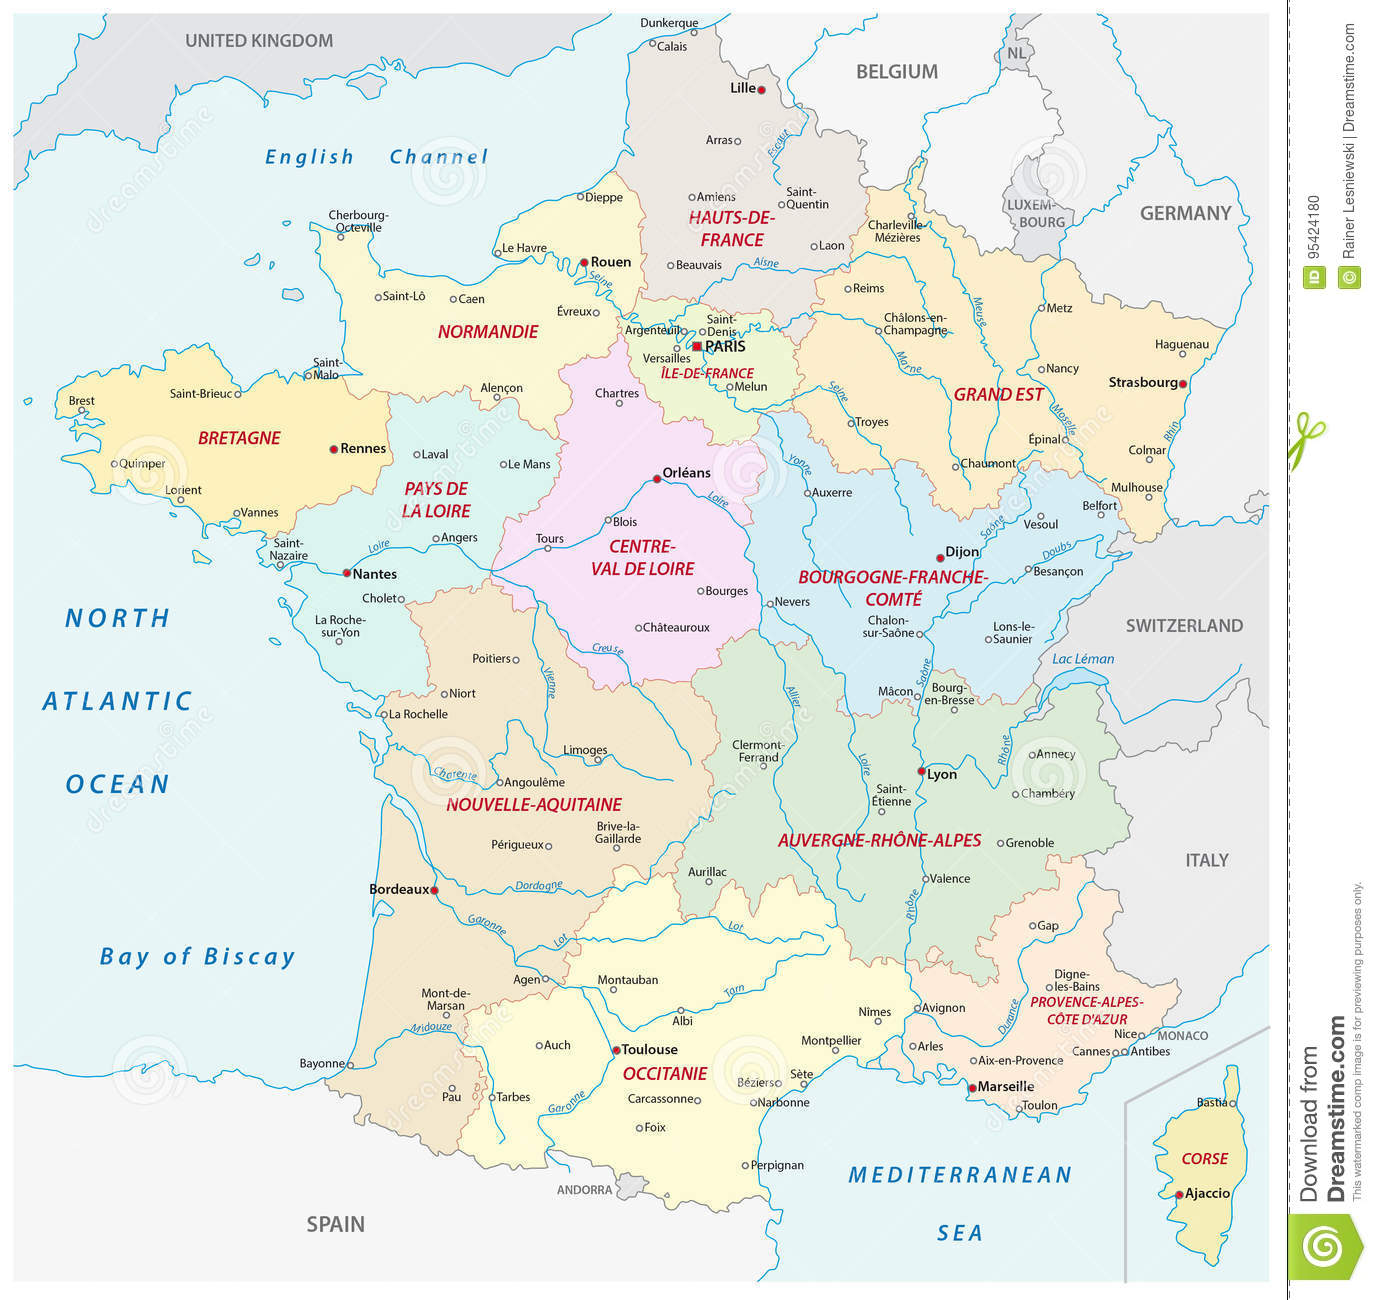 France Map With The New Regions And The Most Important Cities And